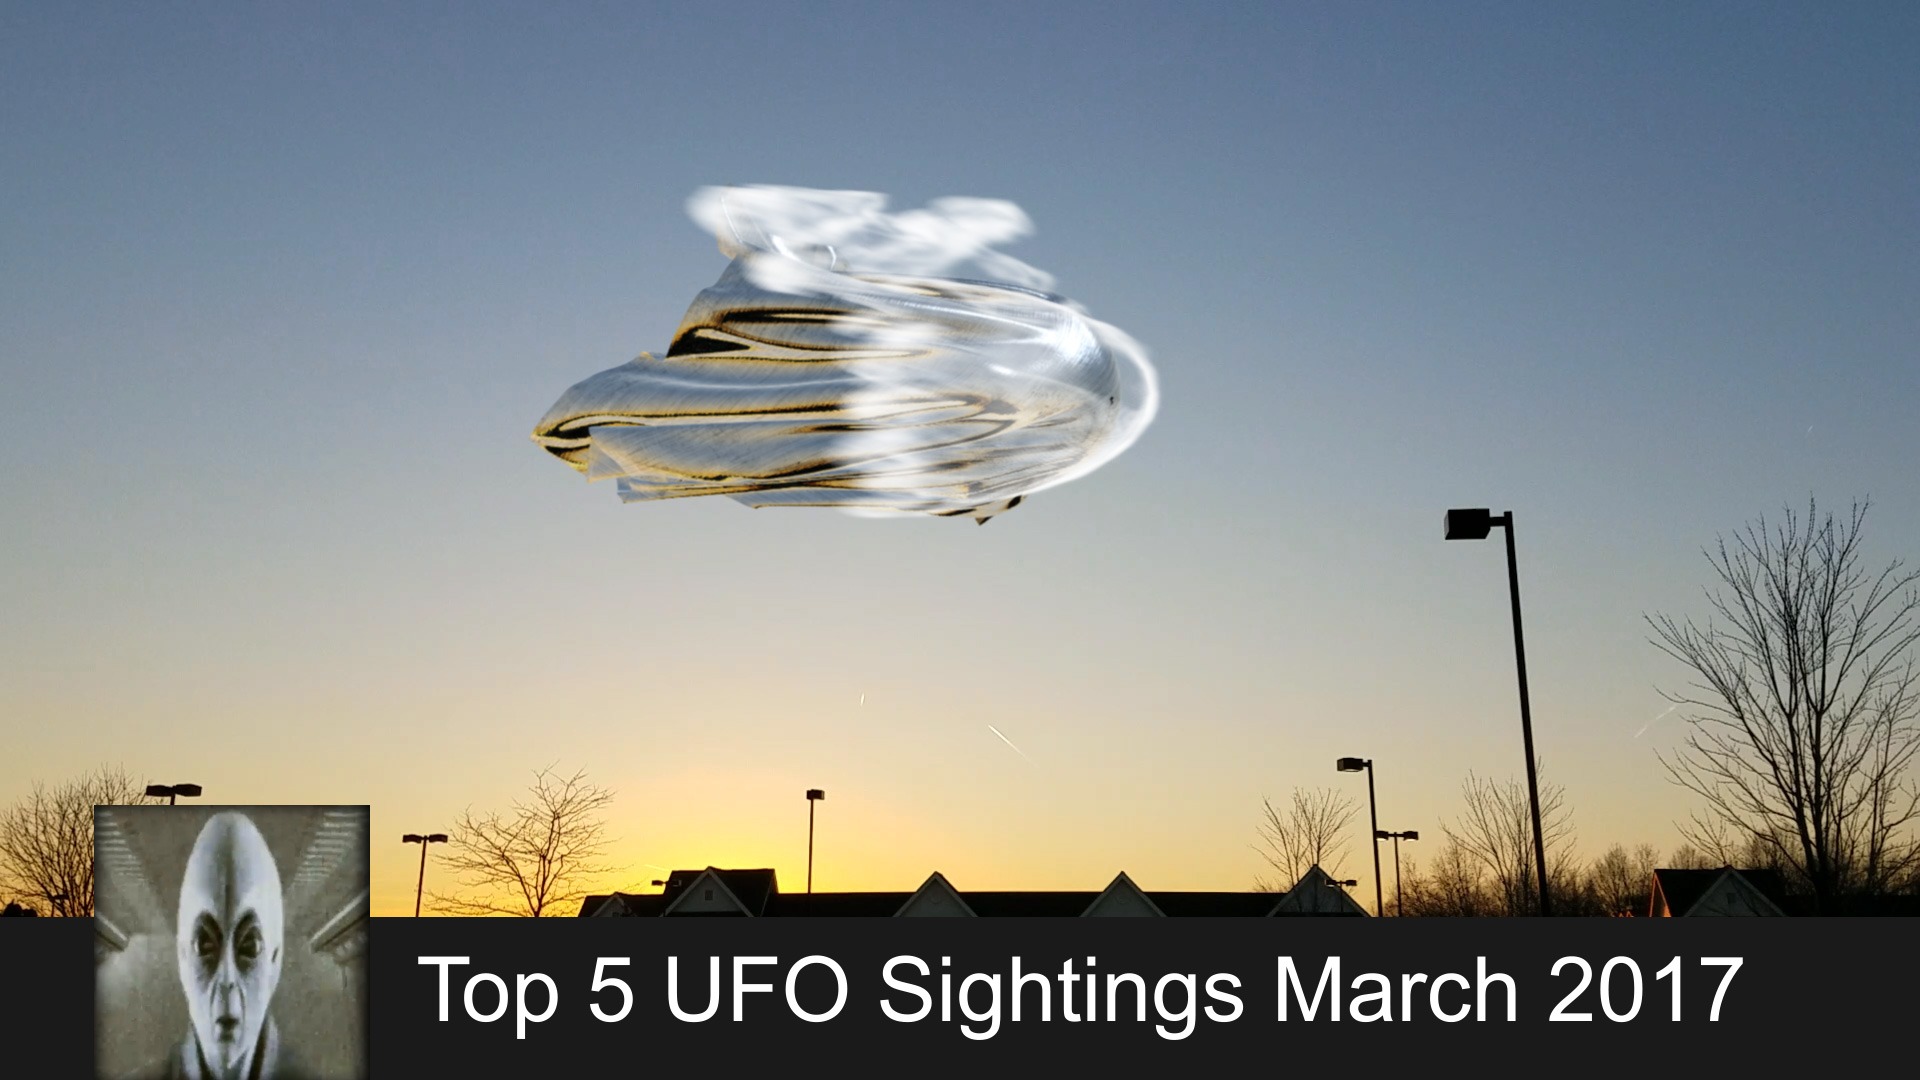 Top 5 UFO Sightings March 4th 2017 | iufosightings